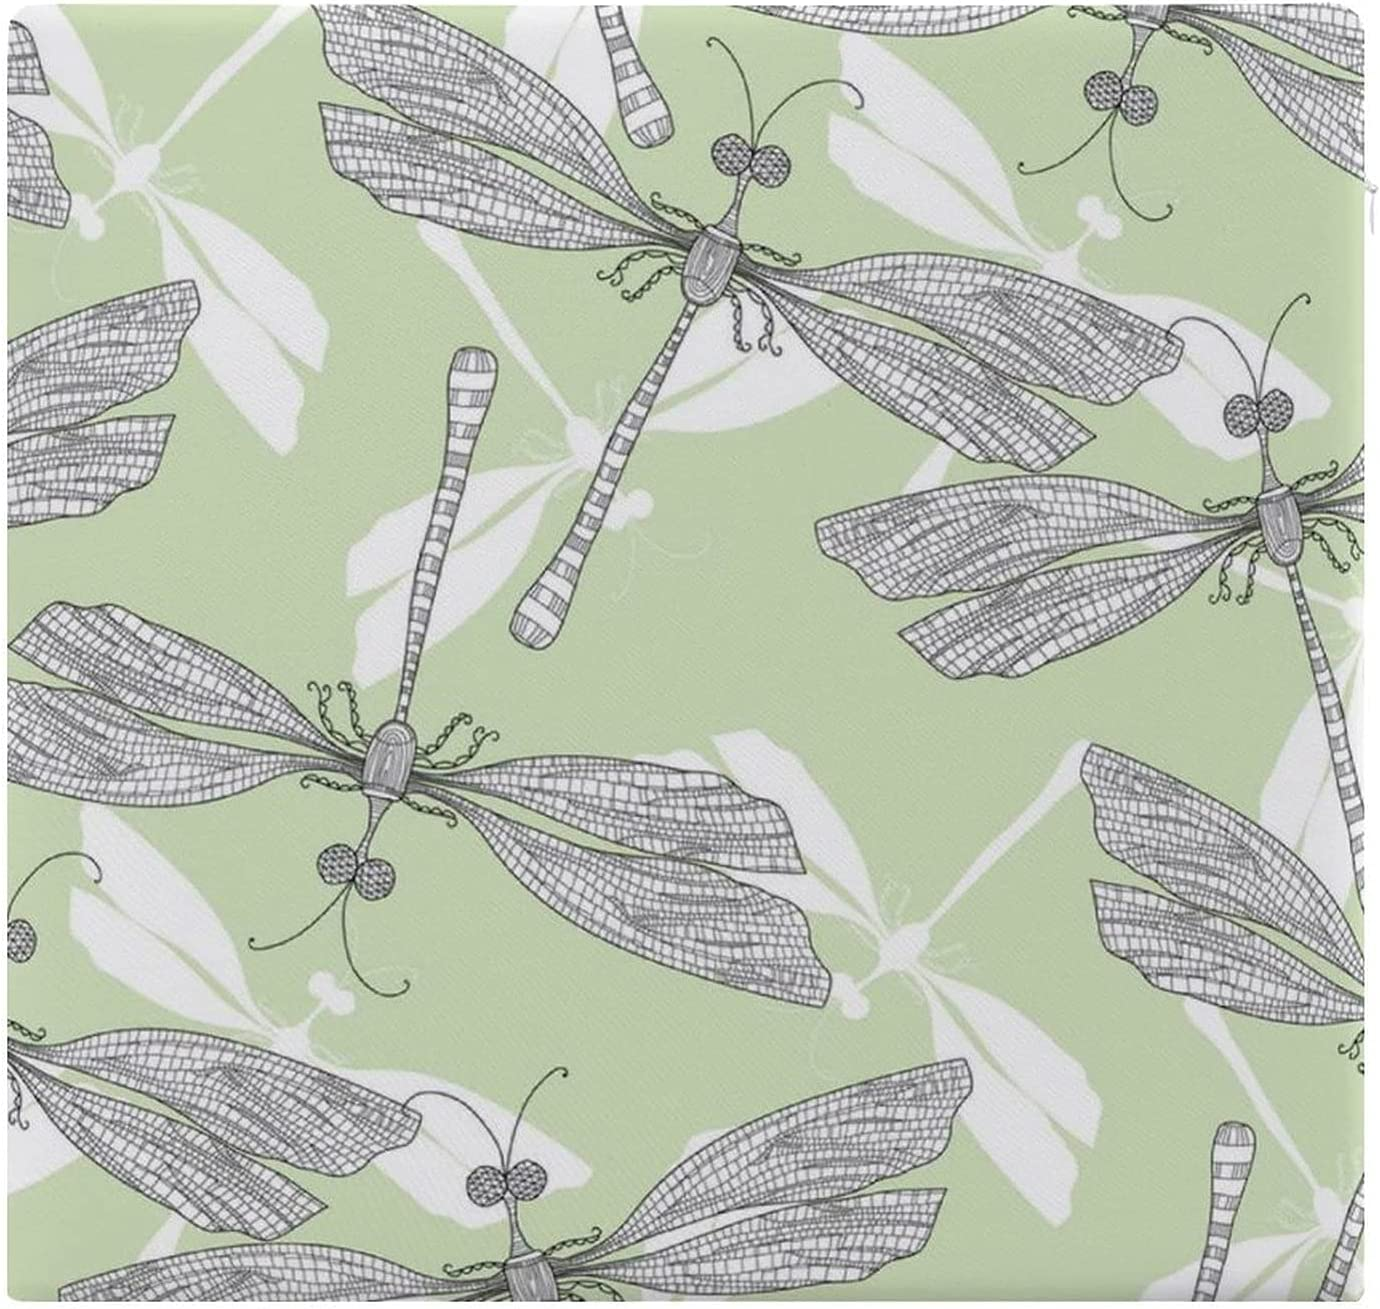 MSACRH Chair Pad Dragonflies El Paso Mall Draw Bench Pillow Soft Japan Maker New Chairs S Car